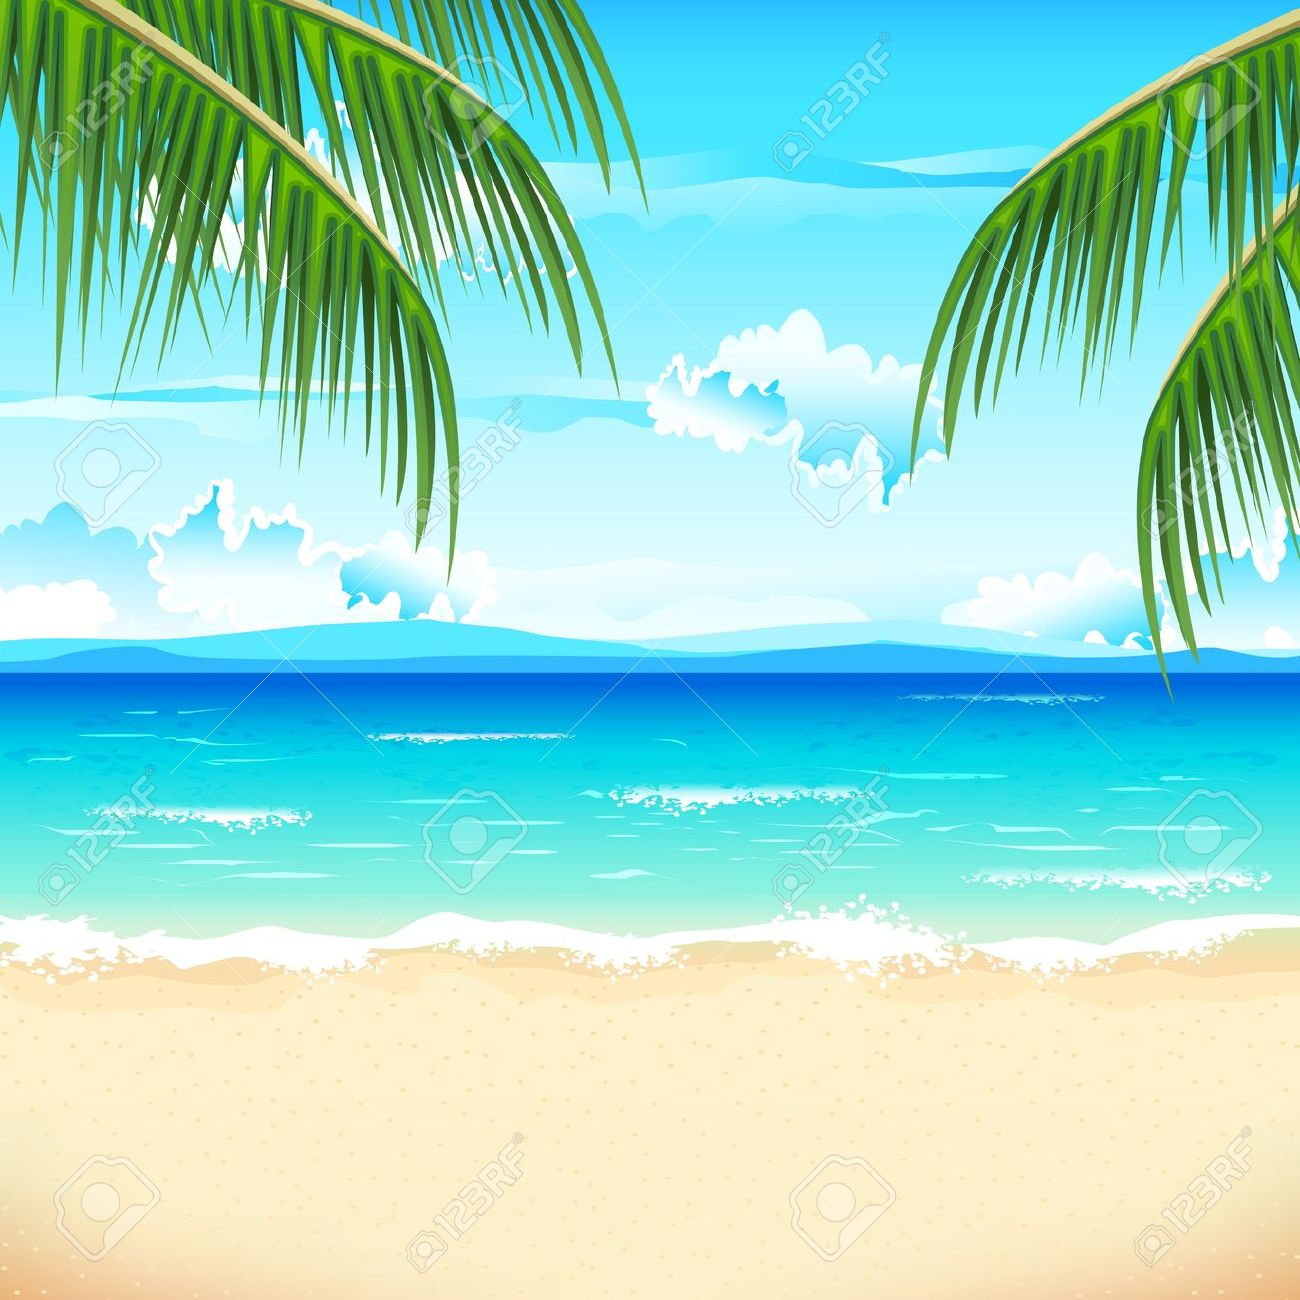 Free clipart beach scenes free stock Free Beach Cliparts Borders, Download Free Clip Art, Free Clip Art ... free stock